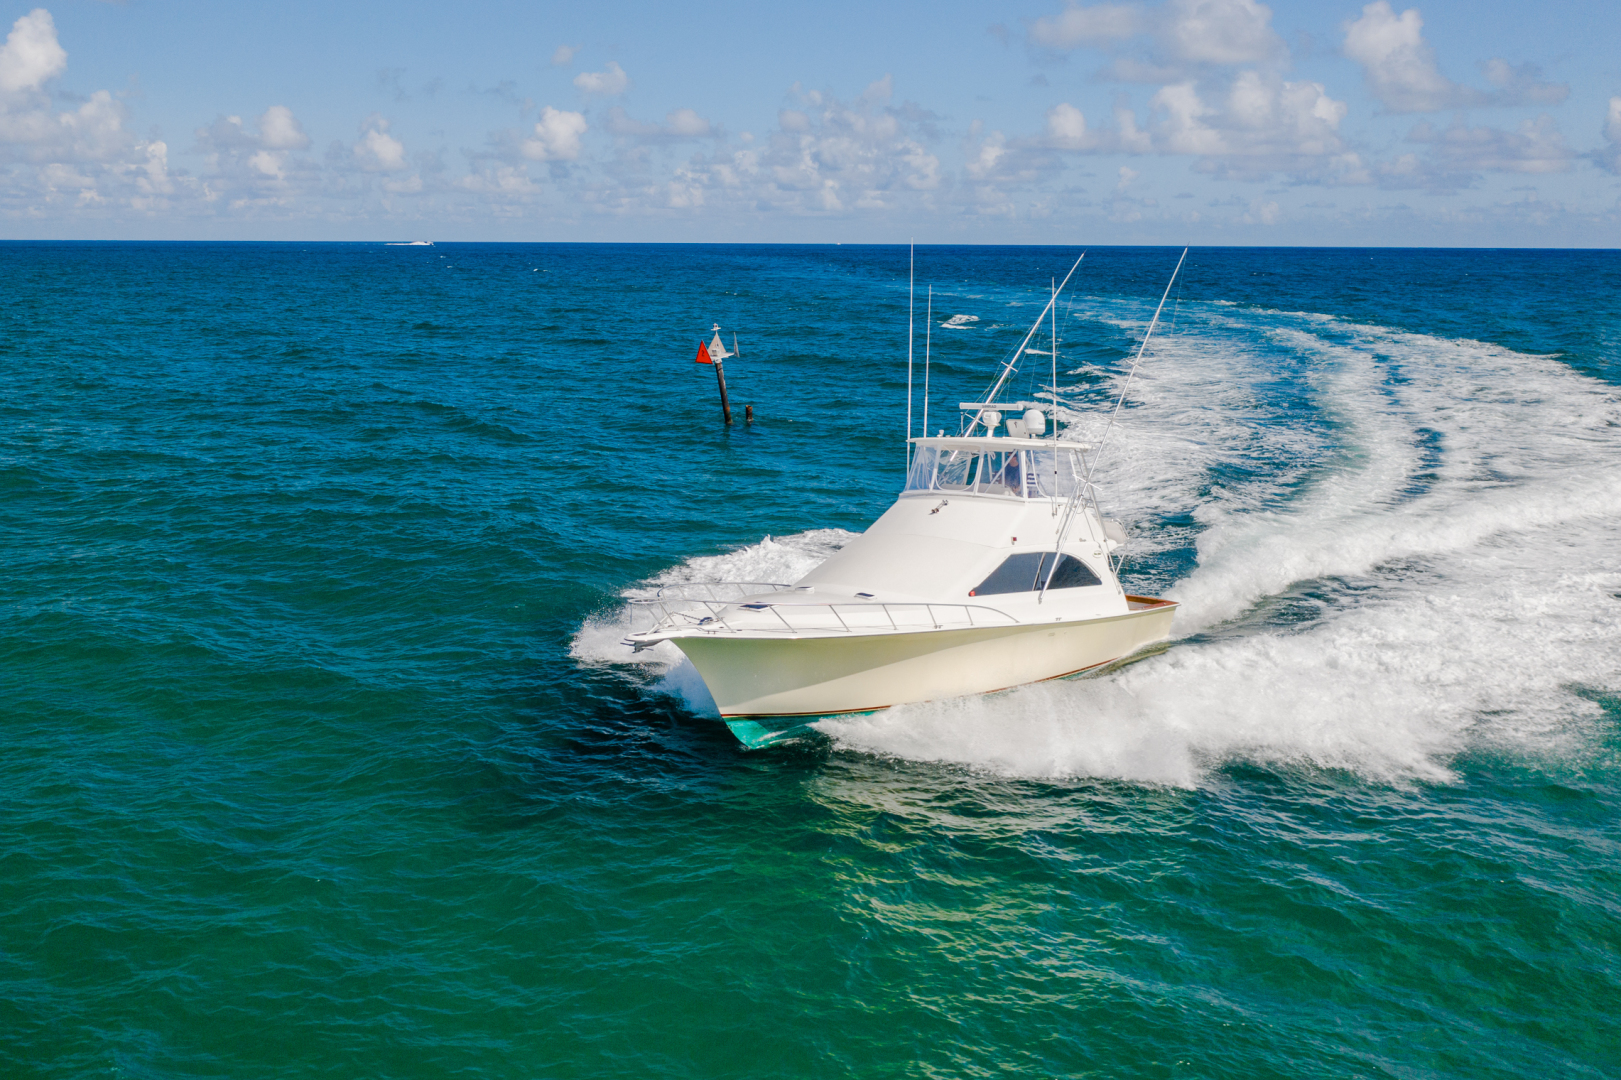 Ocean-Super Sport 2000-Sea Sea Hillsboro Beach-Florida-United States-1336816 | Thumbnail